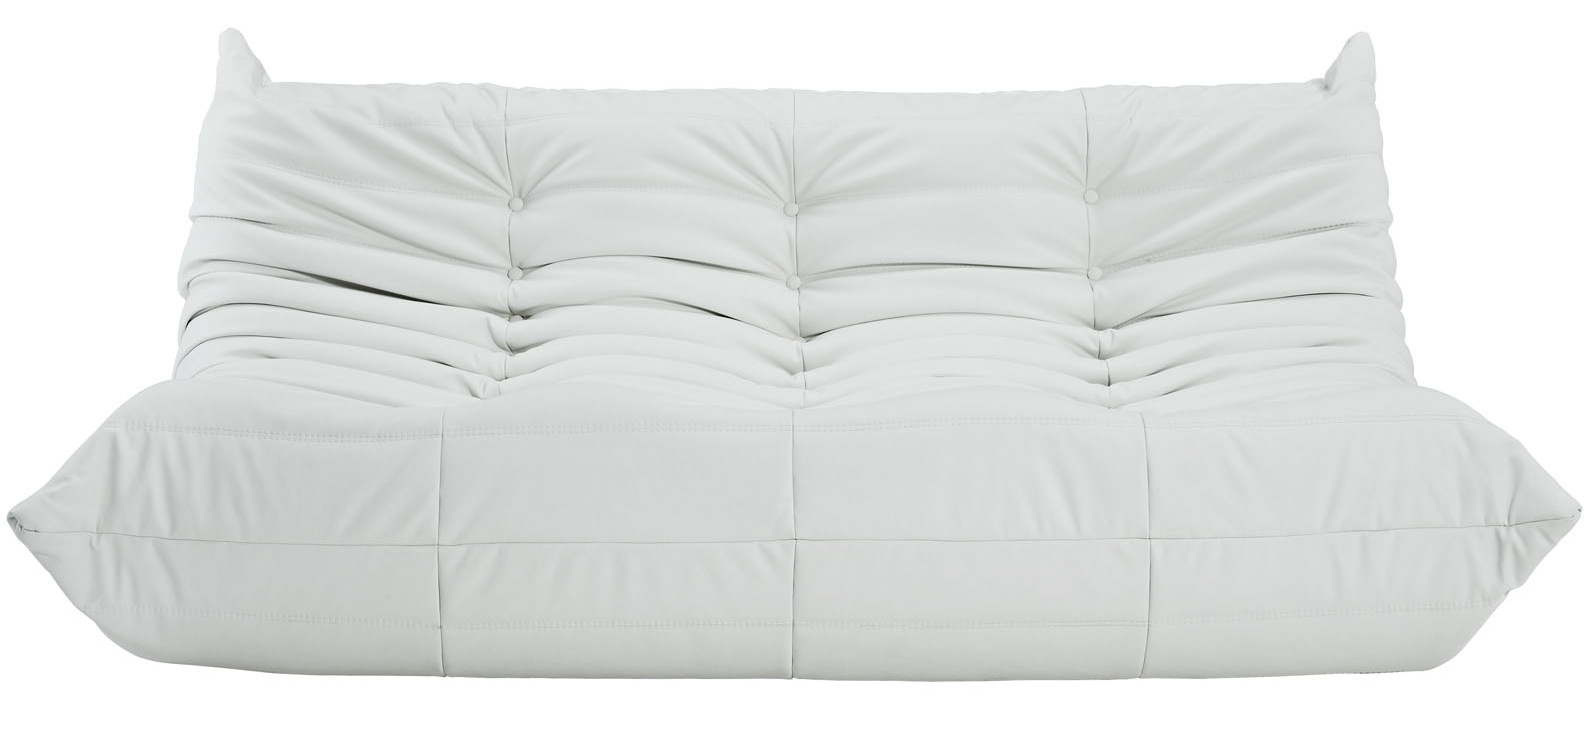 Alphaville Downlow Sofa Review